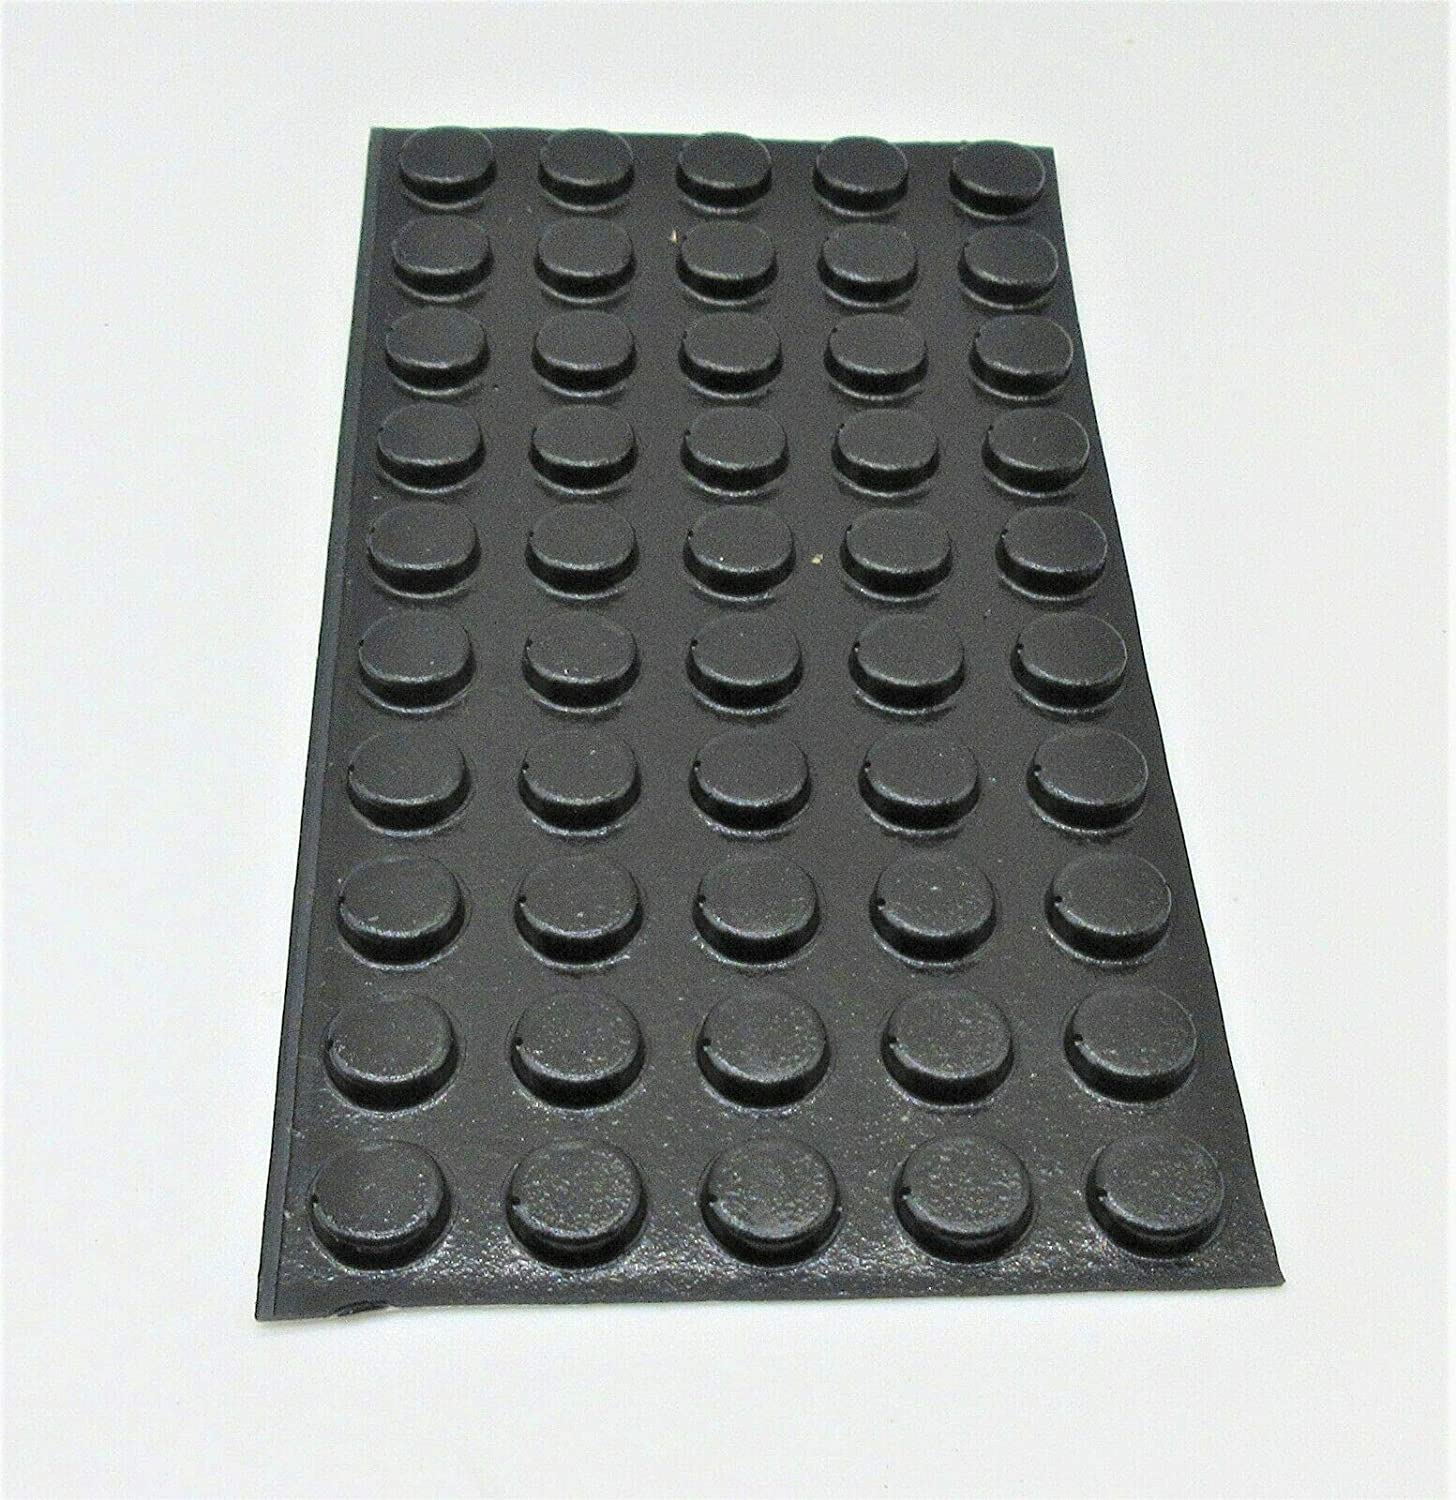 """Be super welcome 3 8"""" Small SEAL limited product Rubber Feet. 3M Adhesive 8 Feet p 50 1 Tall. Backing."""